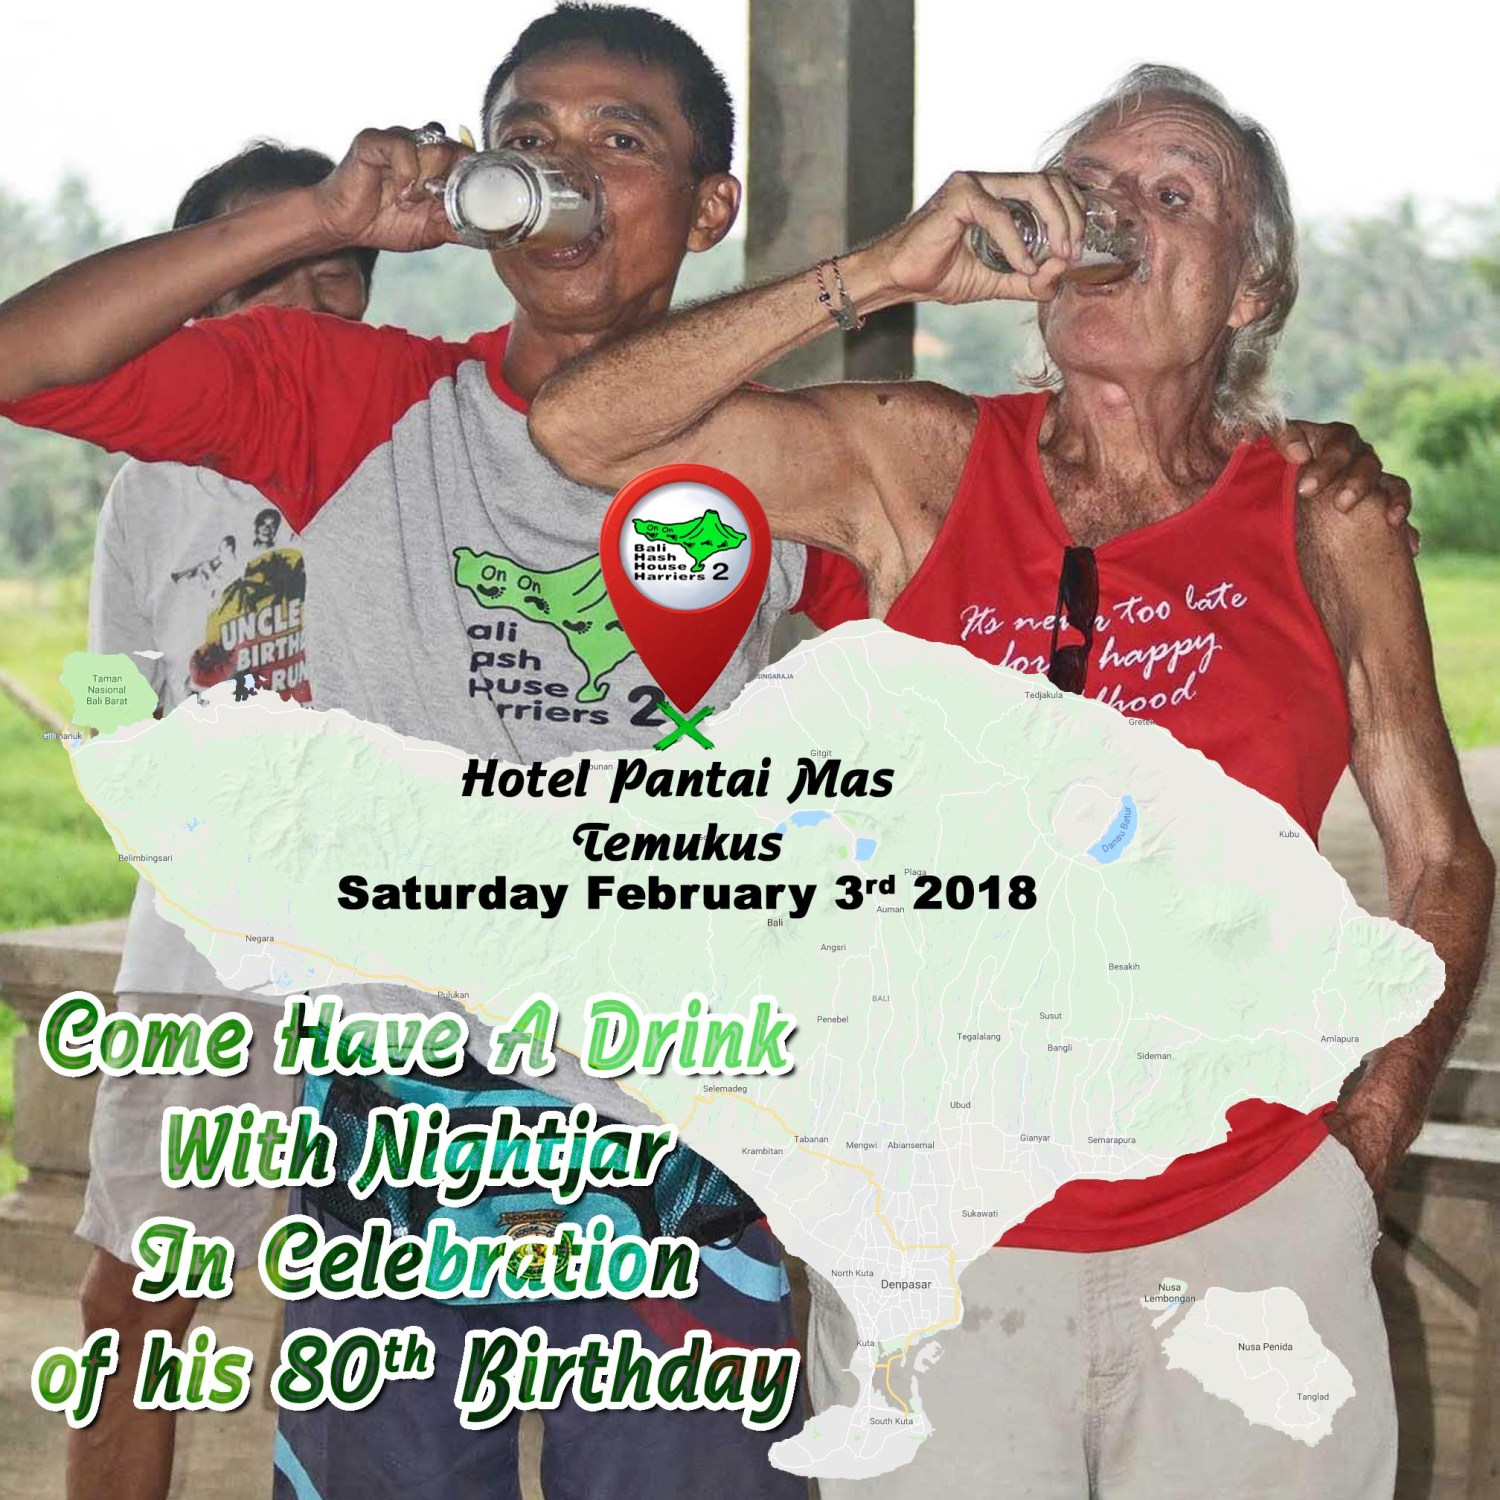 UPDATE Bali Hash House Harriers 2 Victor Nightjar Mason's  80th Birthday Run 3 Feb 2018